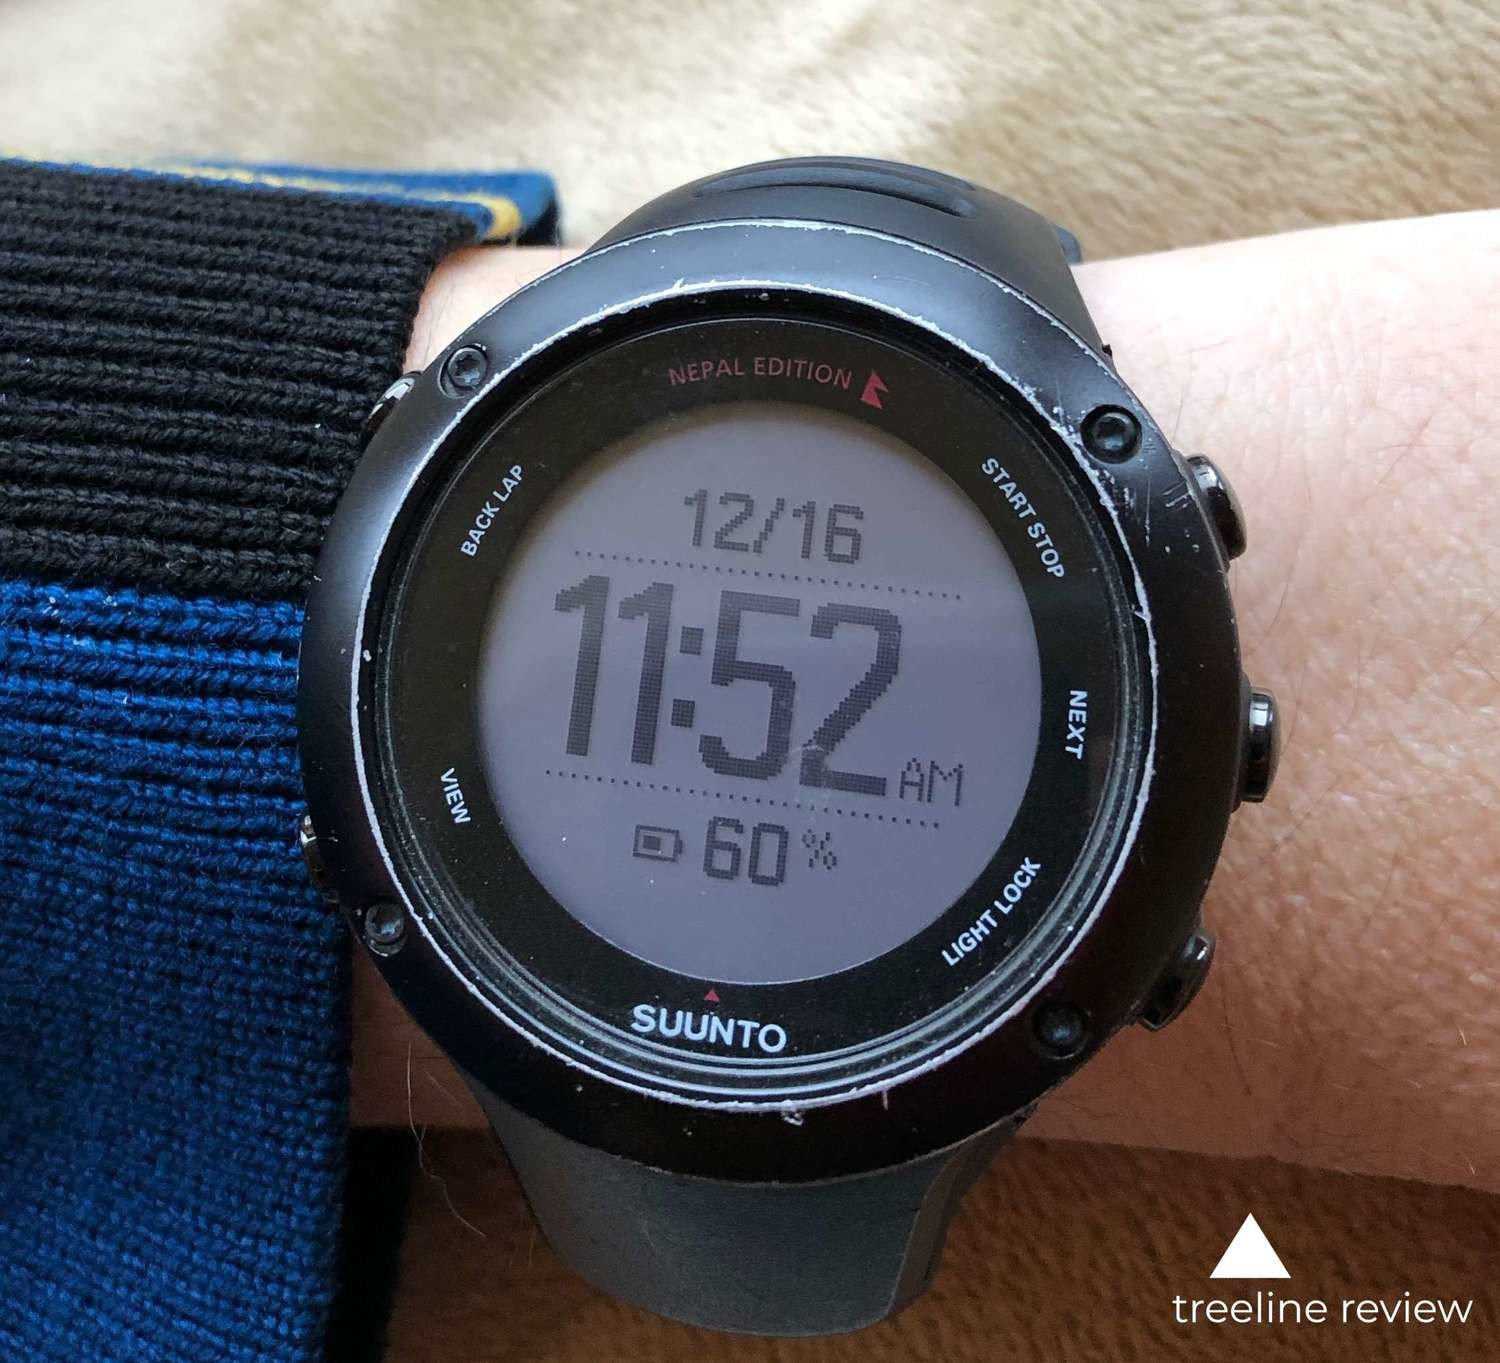 A close up view of the Suunto Ambit3 displaying time, date, and battery life data.